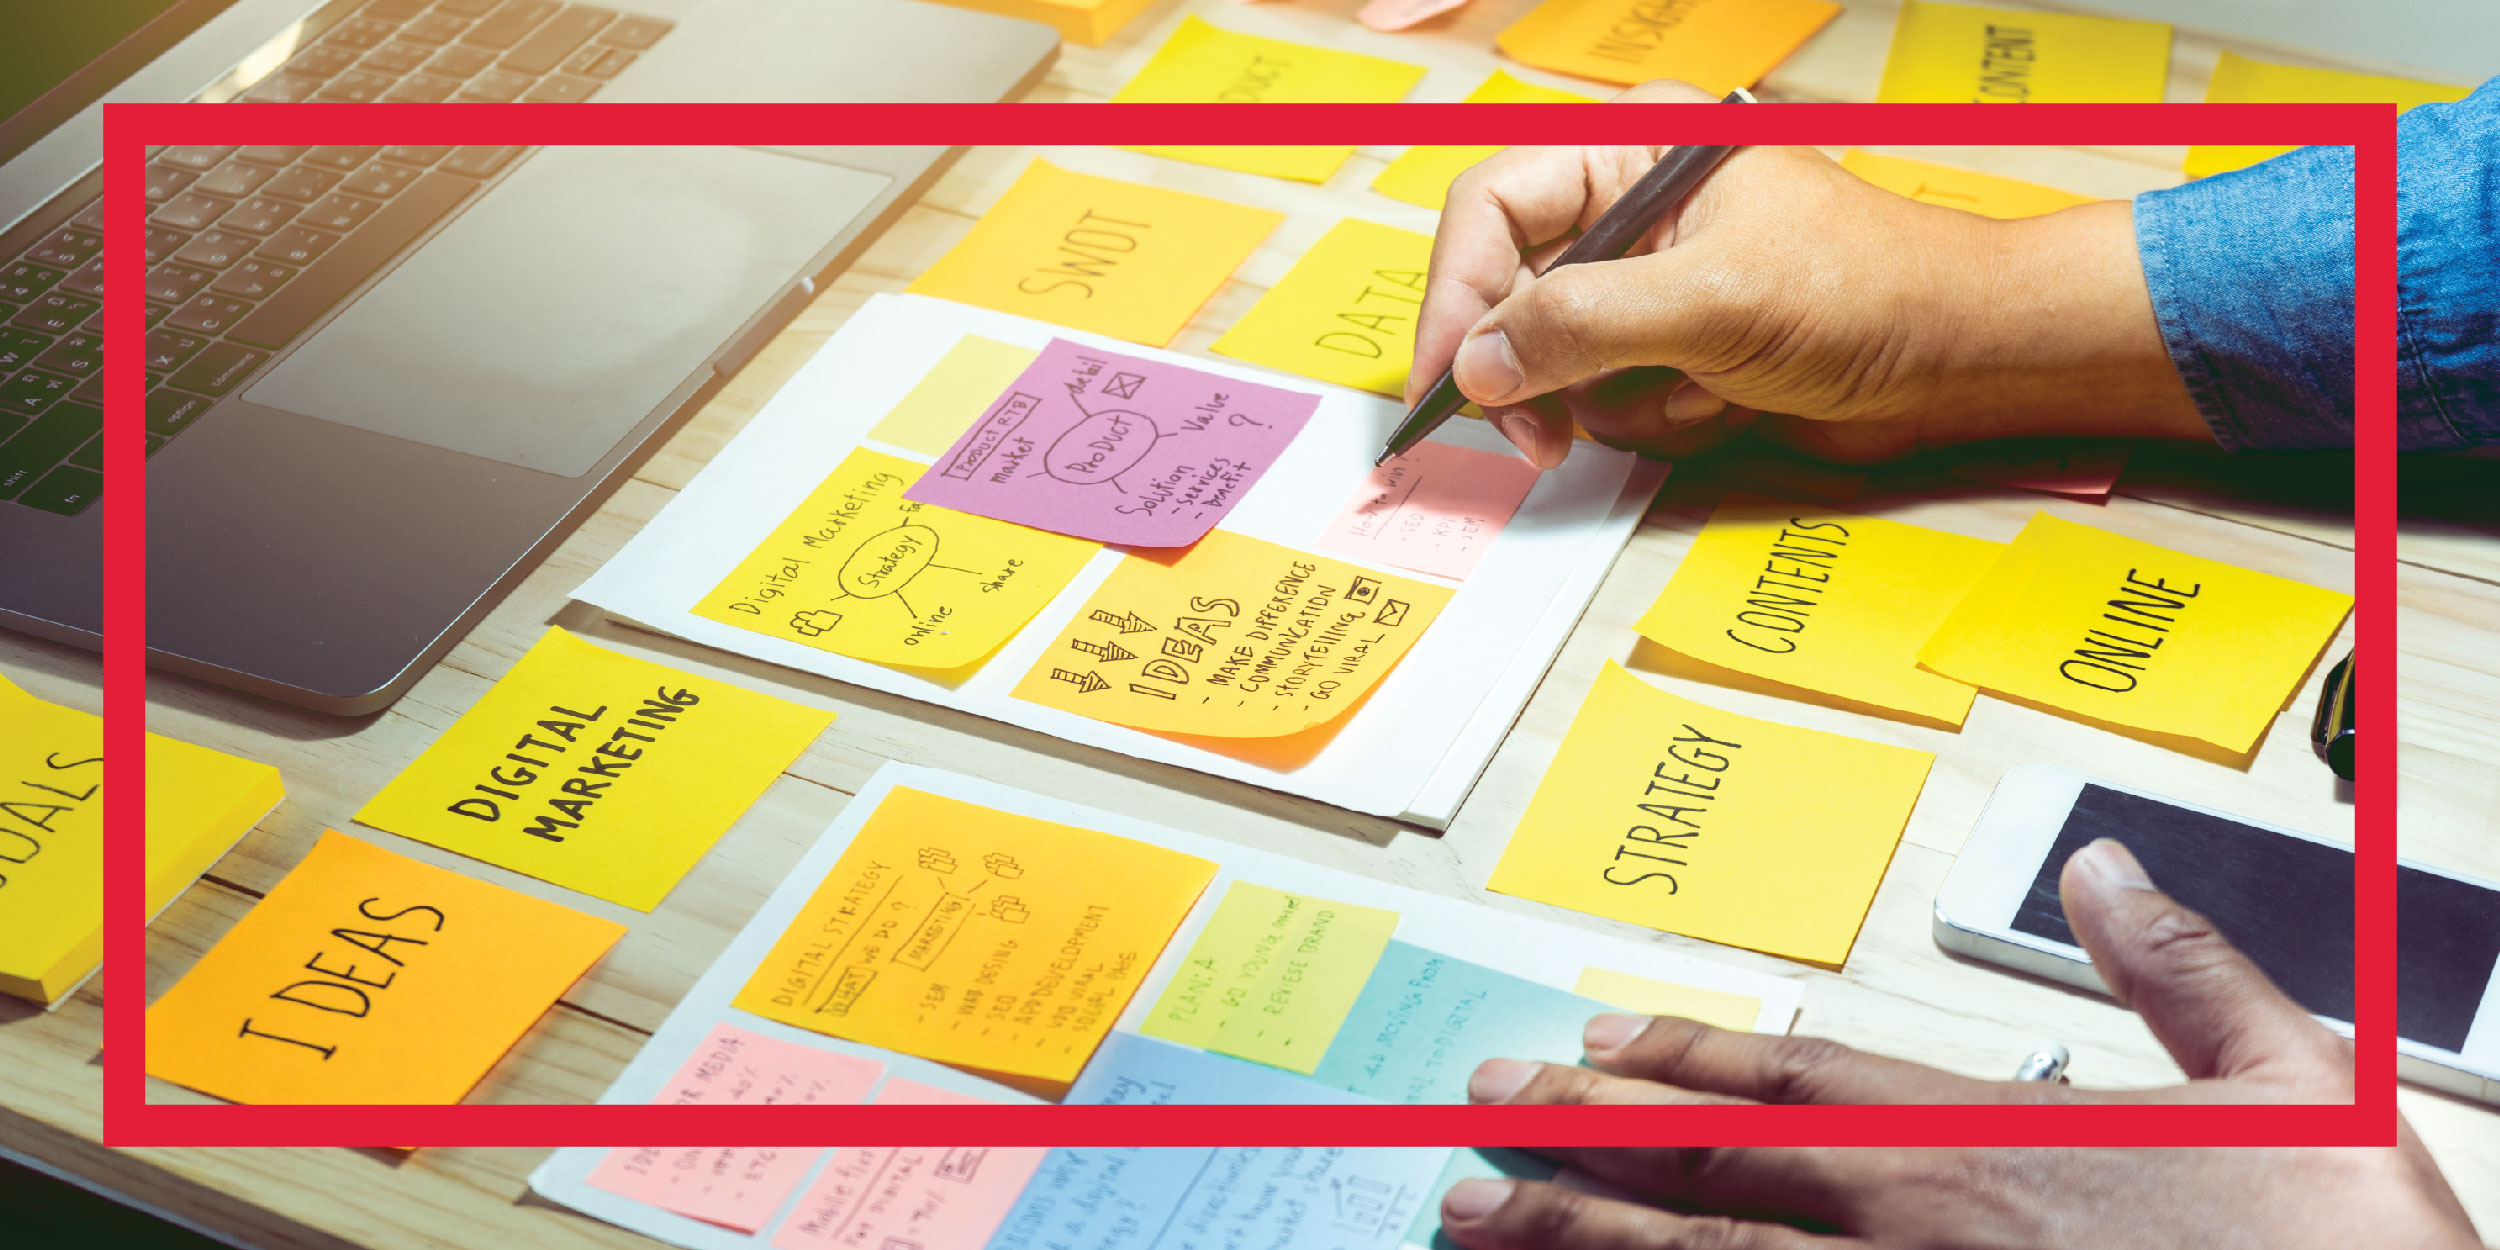 Writing creative ideas on sticky notes